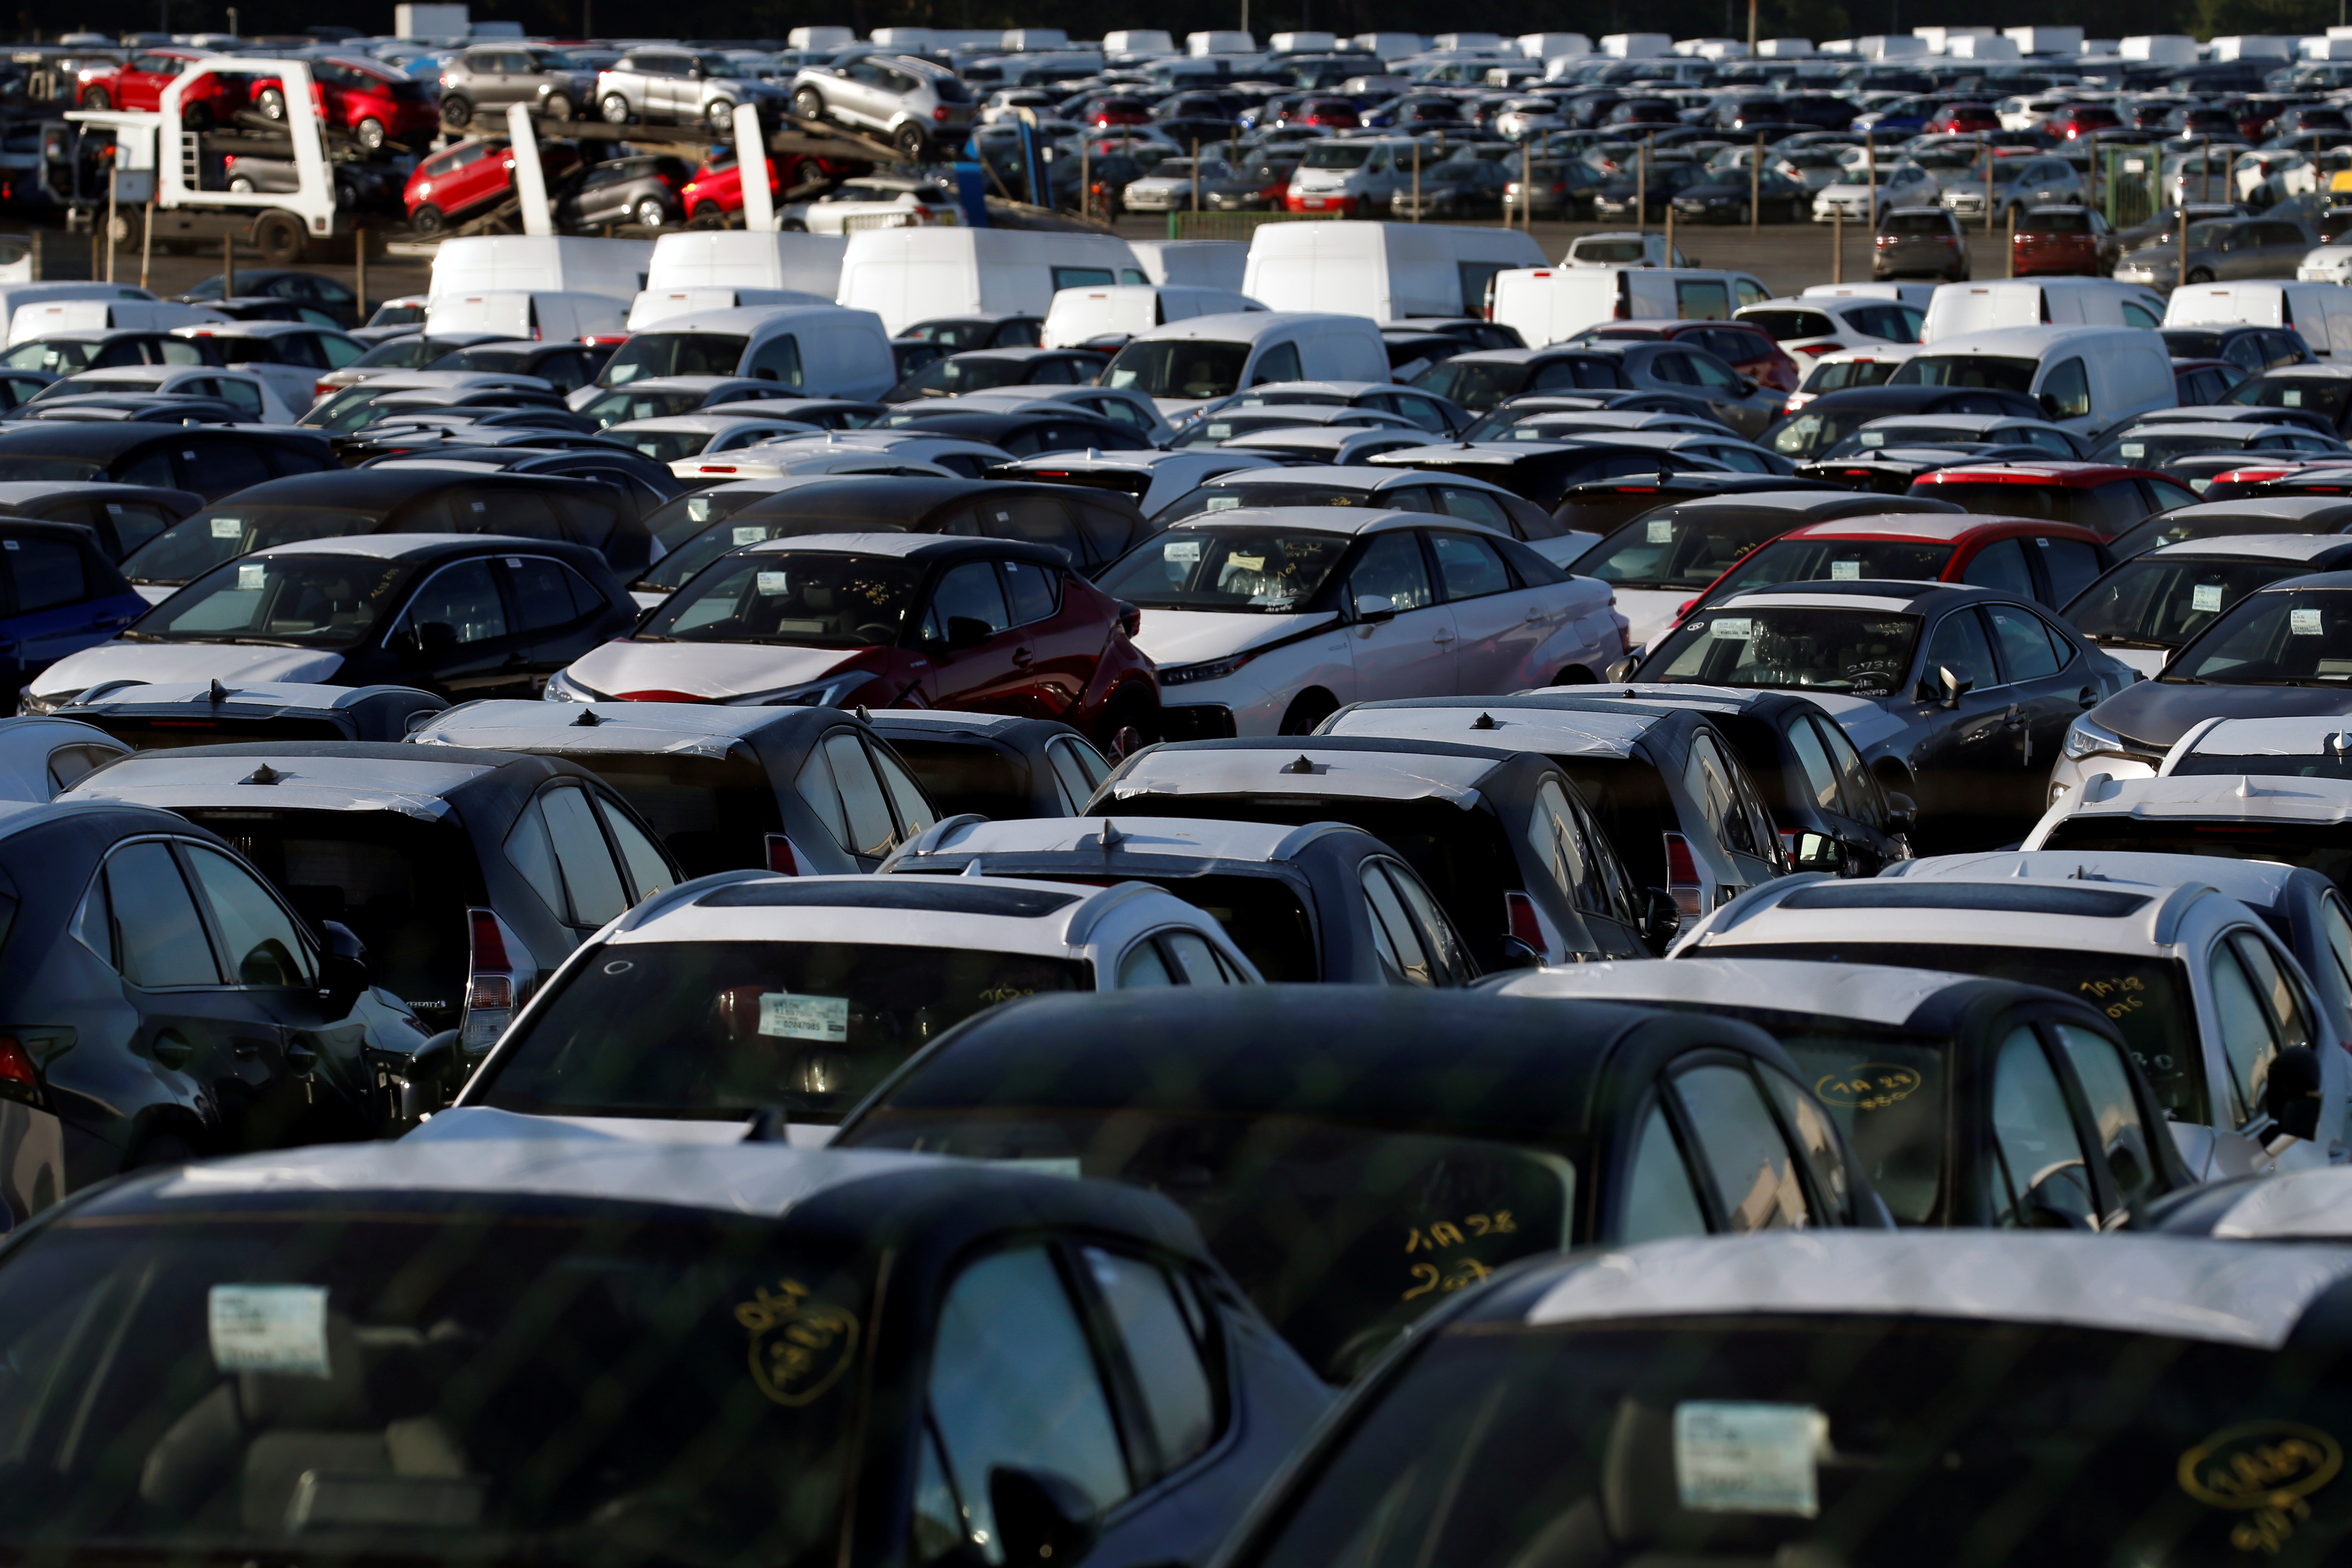 Stocks of new cars are parked in a lot, at Walon France automobile transport company in Hordain, northern France, May 26, 2020. REUTERS/Pascal Rossignol